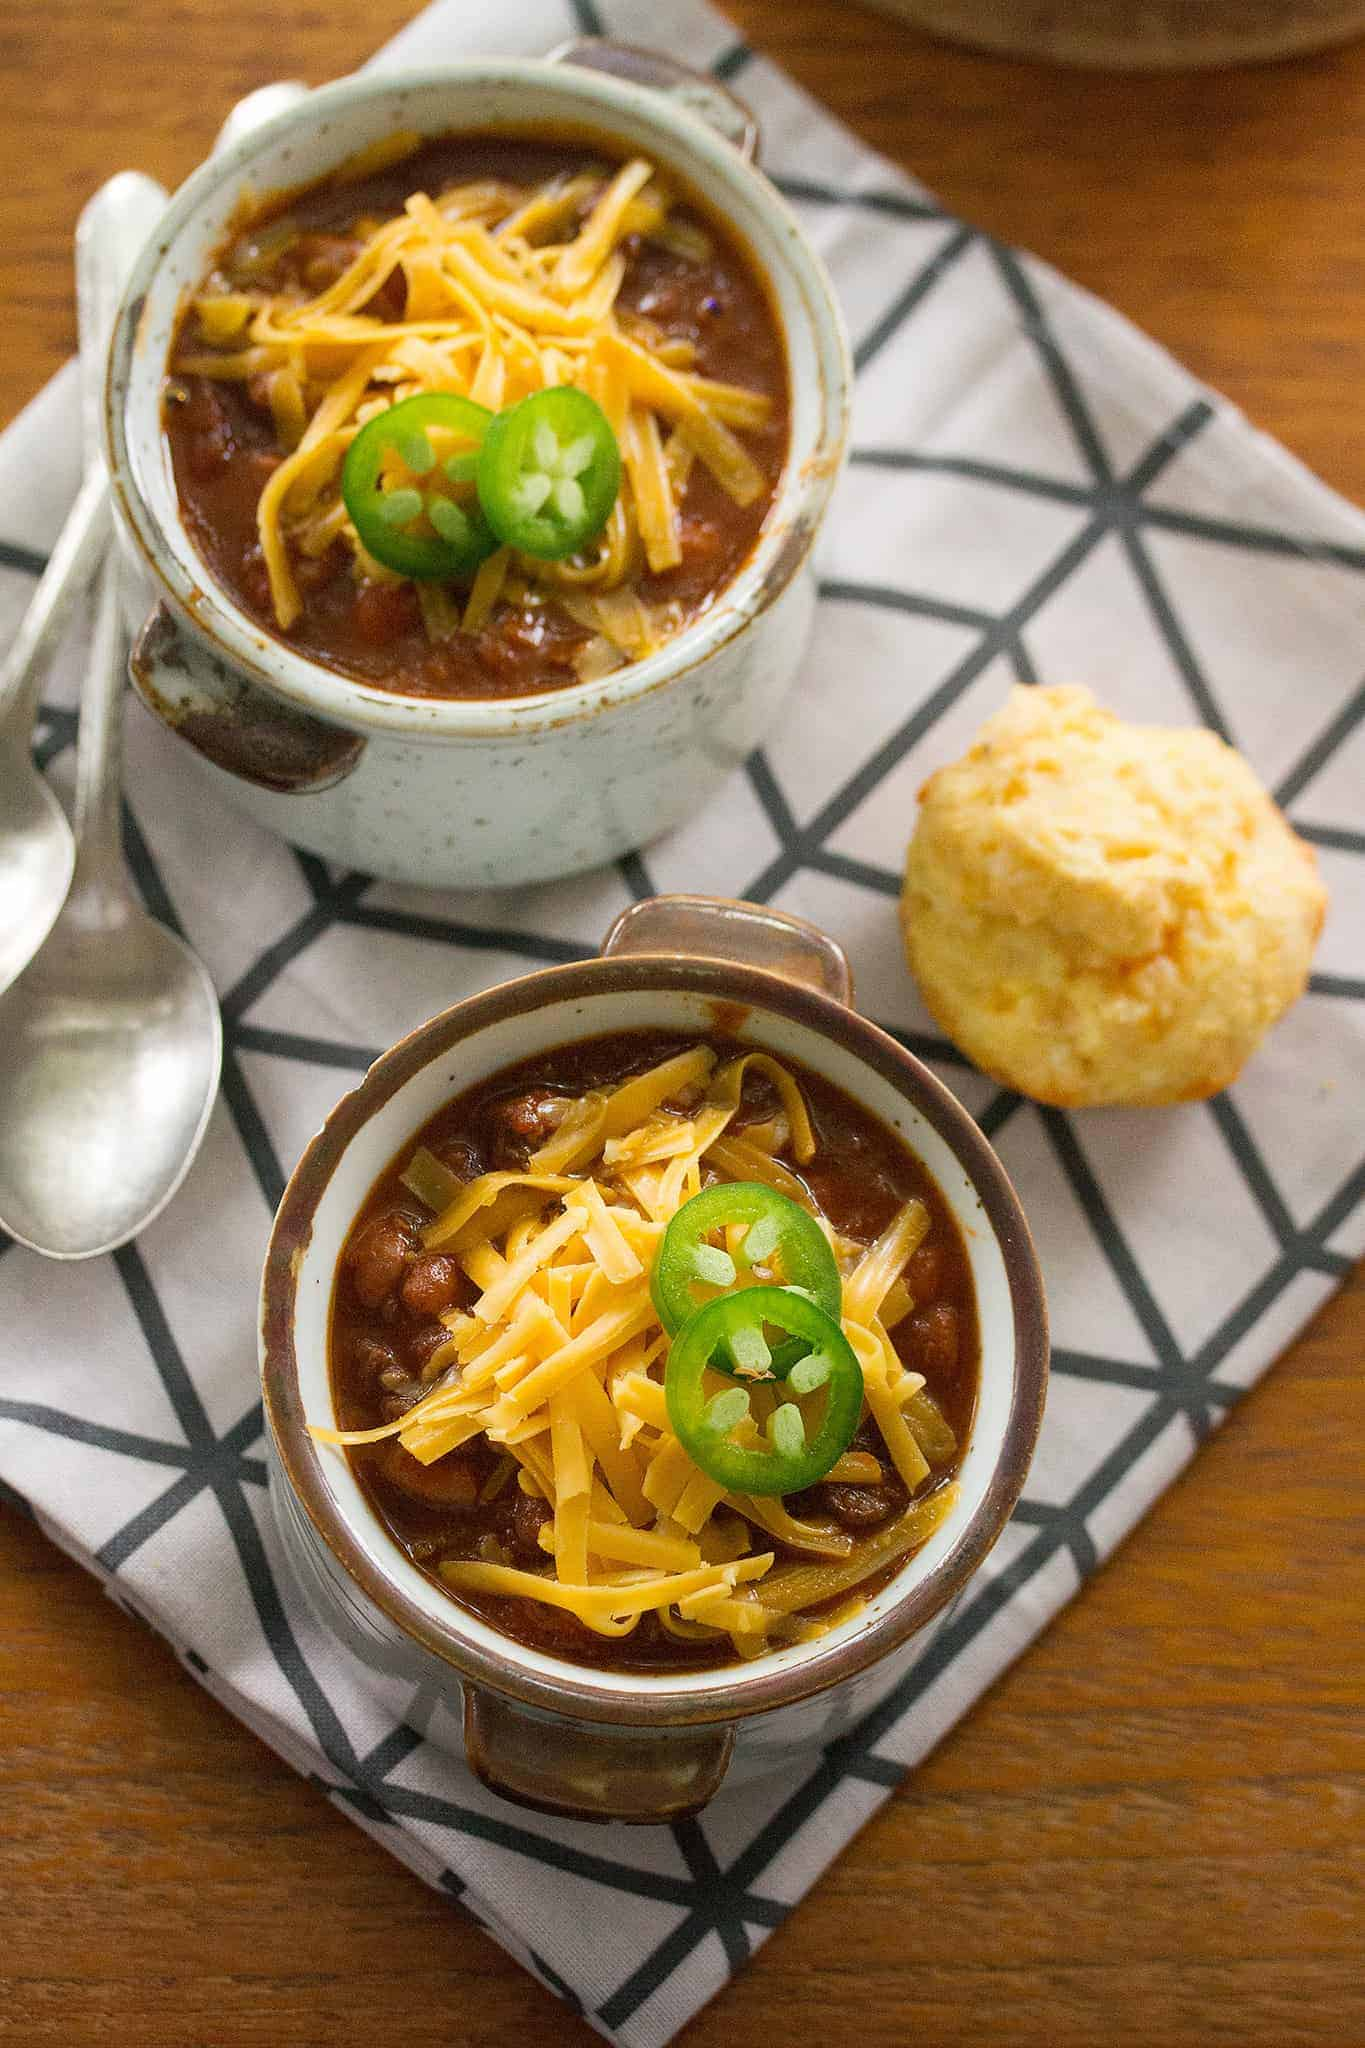 Jalapeno Business: Chunky Chuckwagon Chili